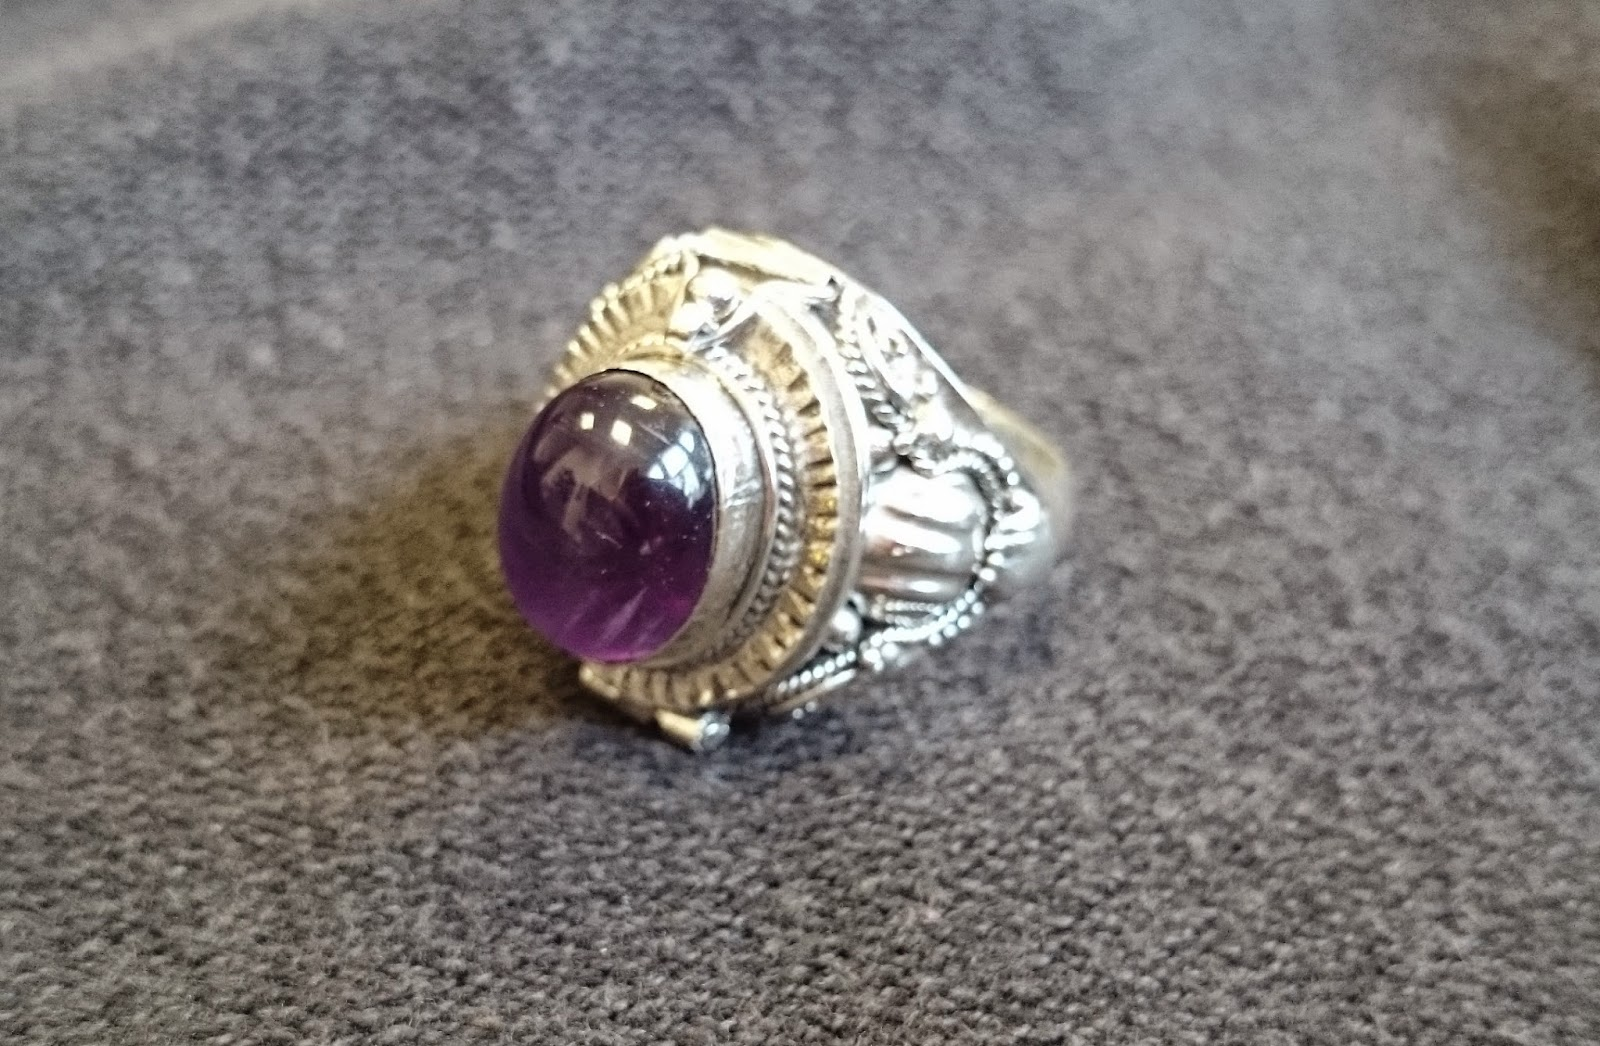 regal rose saros silver poison trinket ring amethyst gothic jewellery